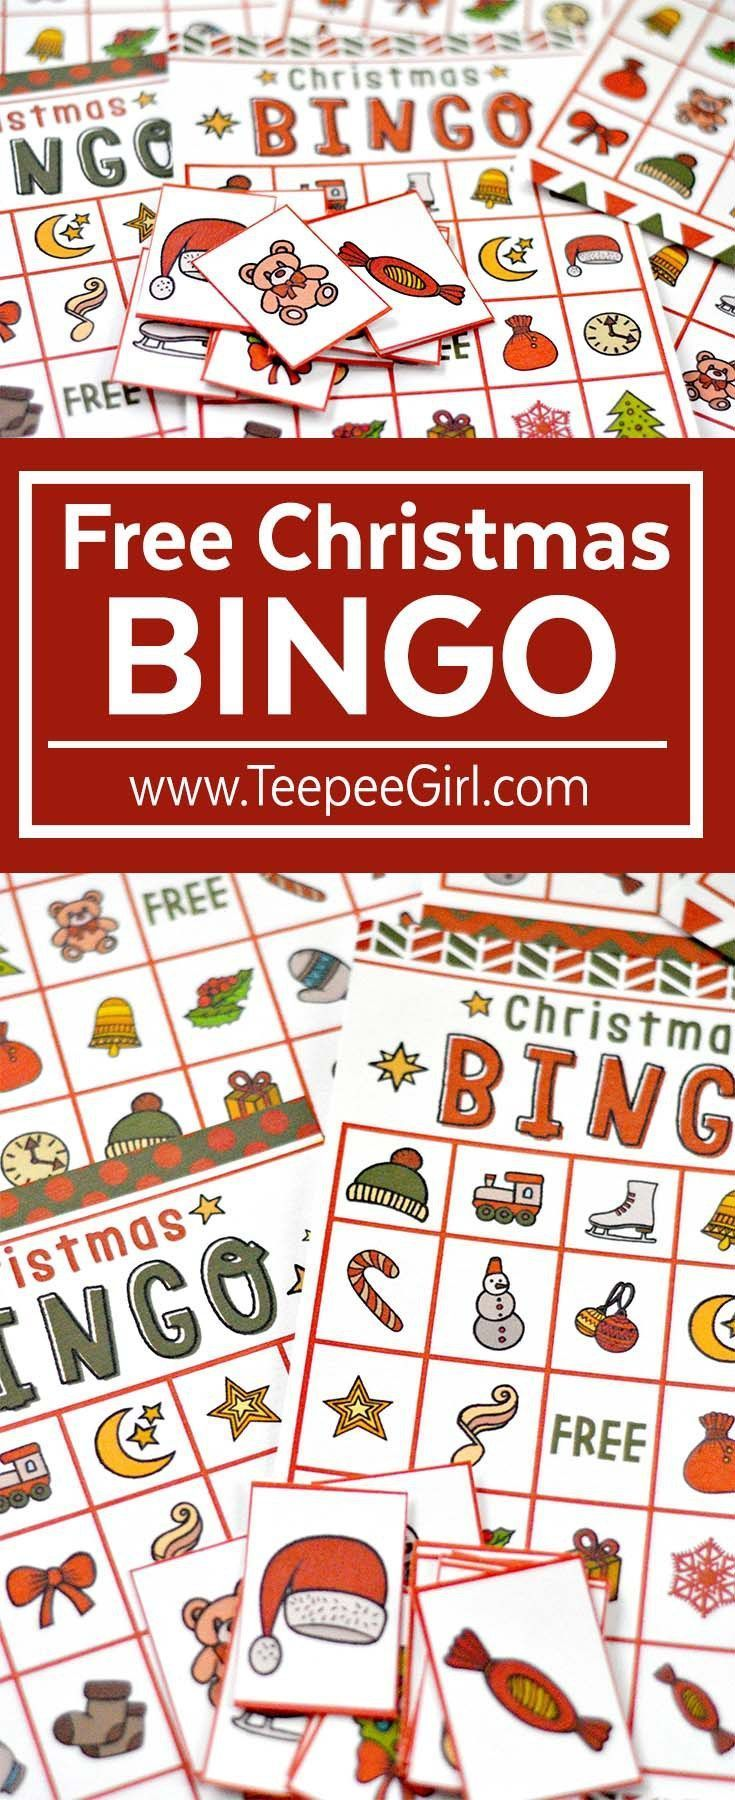 This free bingo game is the perfect (and easy!) way to add holiday fun to all your Christmas parties this year! Click here to get your free bingo game (and other great holiday ideas) from http://www.TeepeeGirl.com!